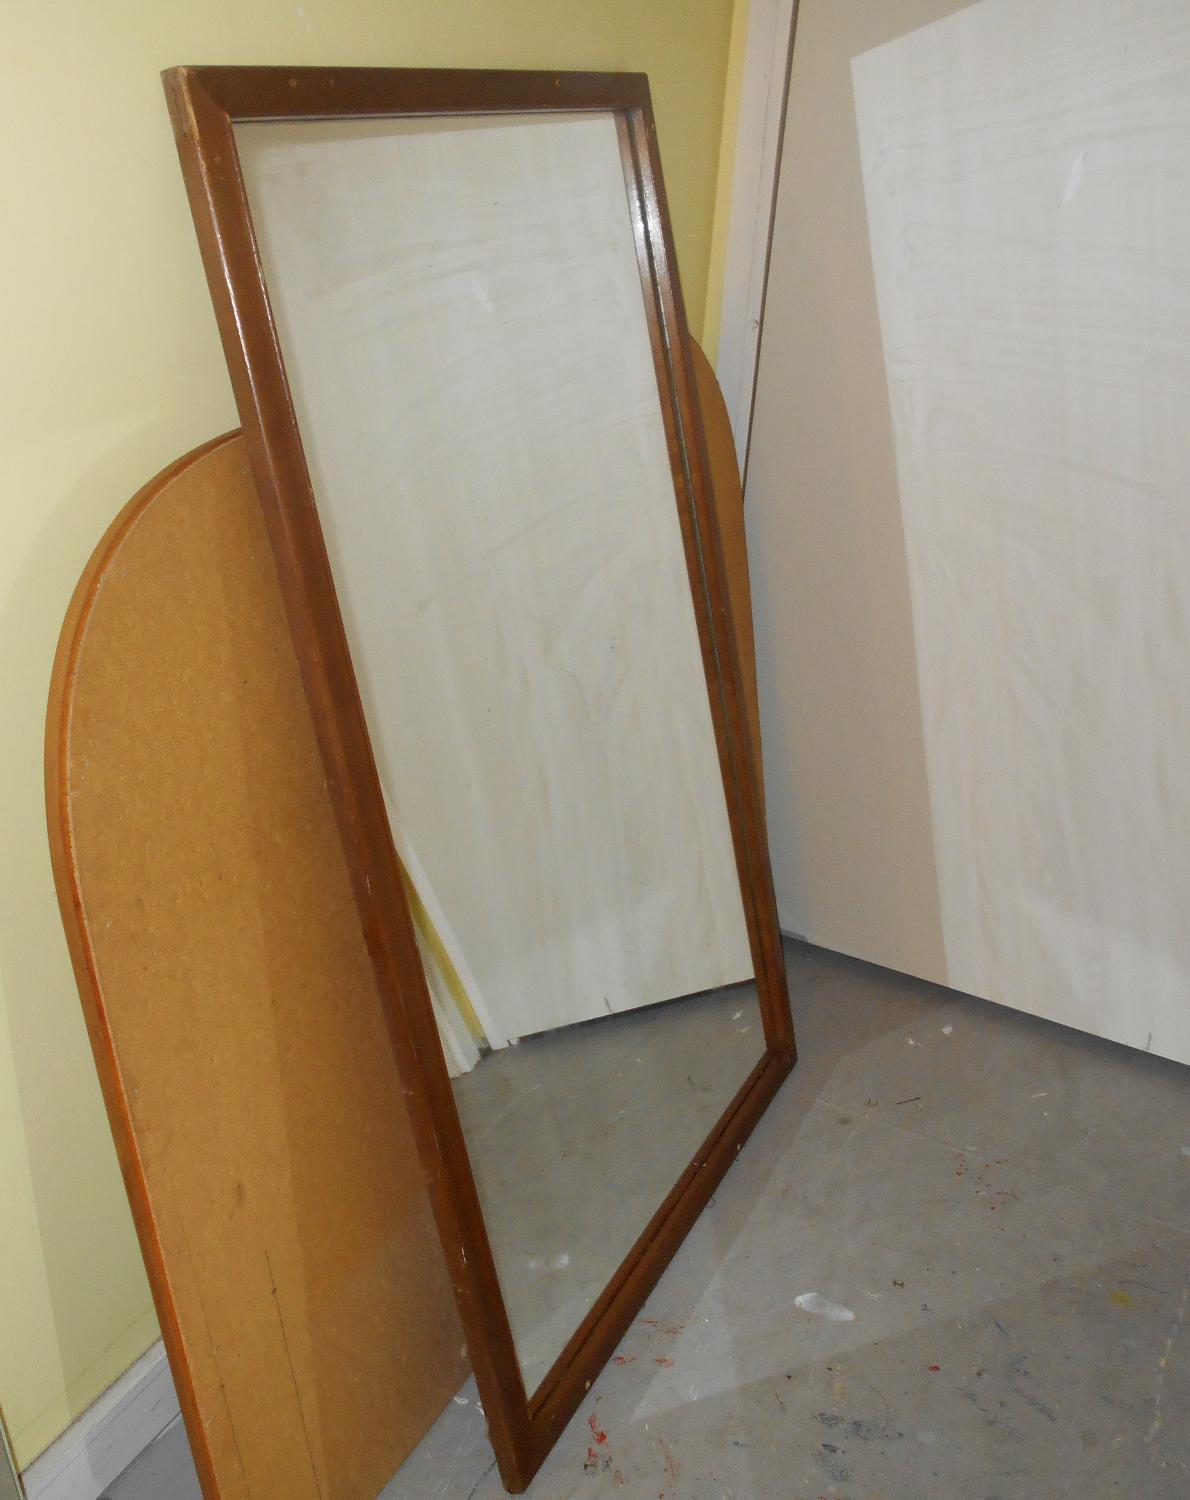 Best large wood framed mirror 32 x 50 gibsons for Mirror 50 x 50